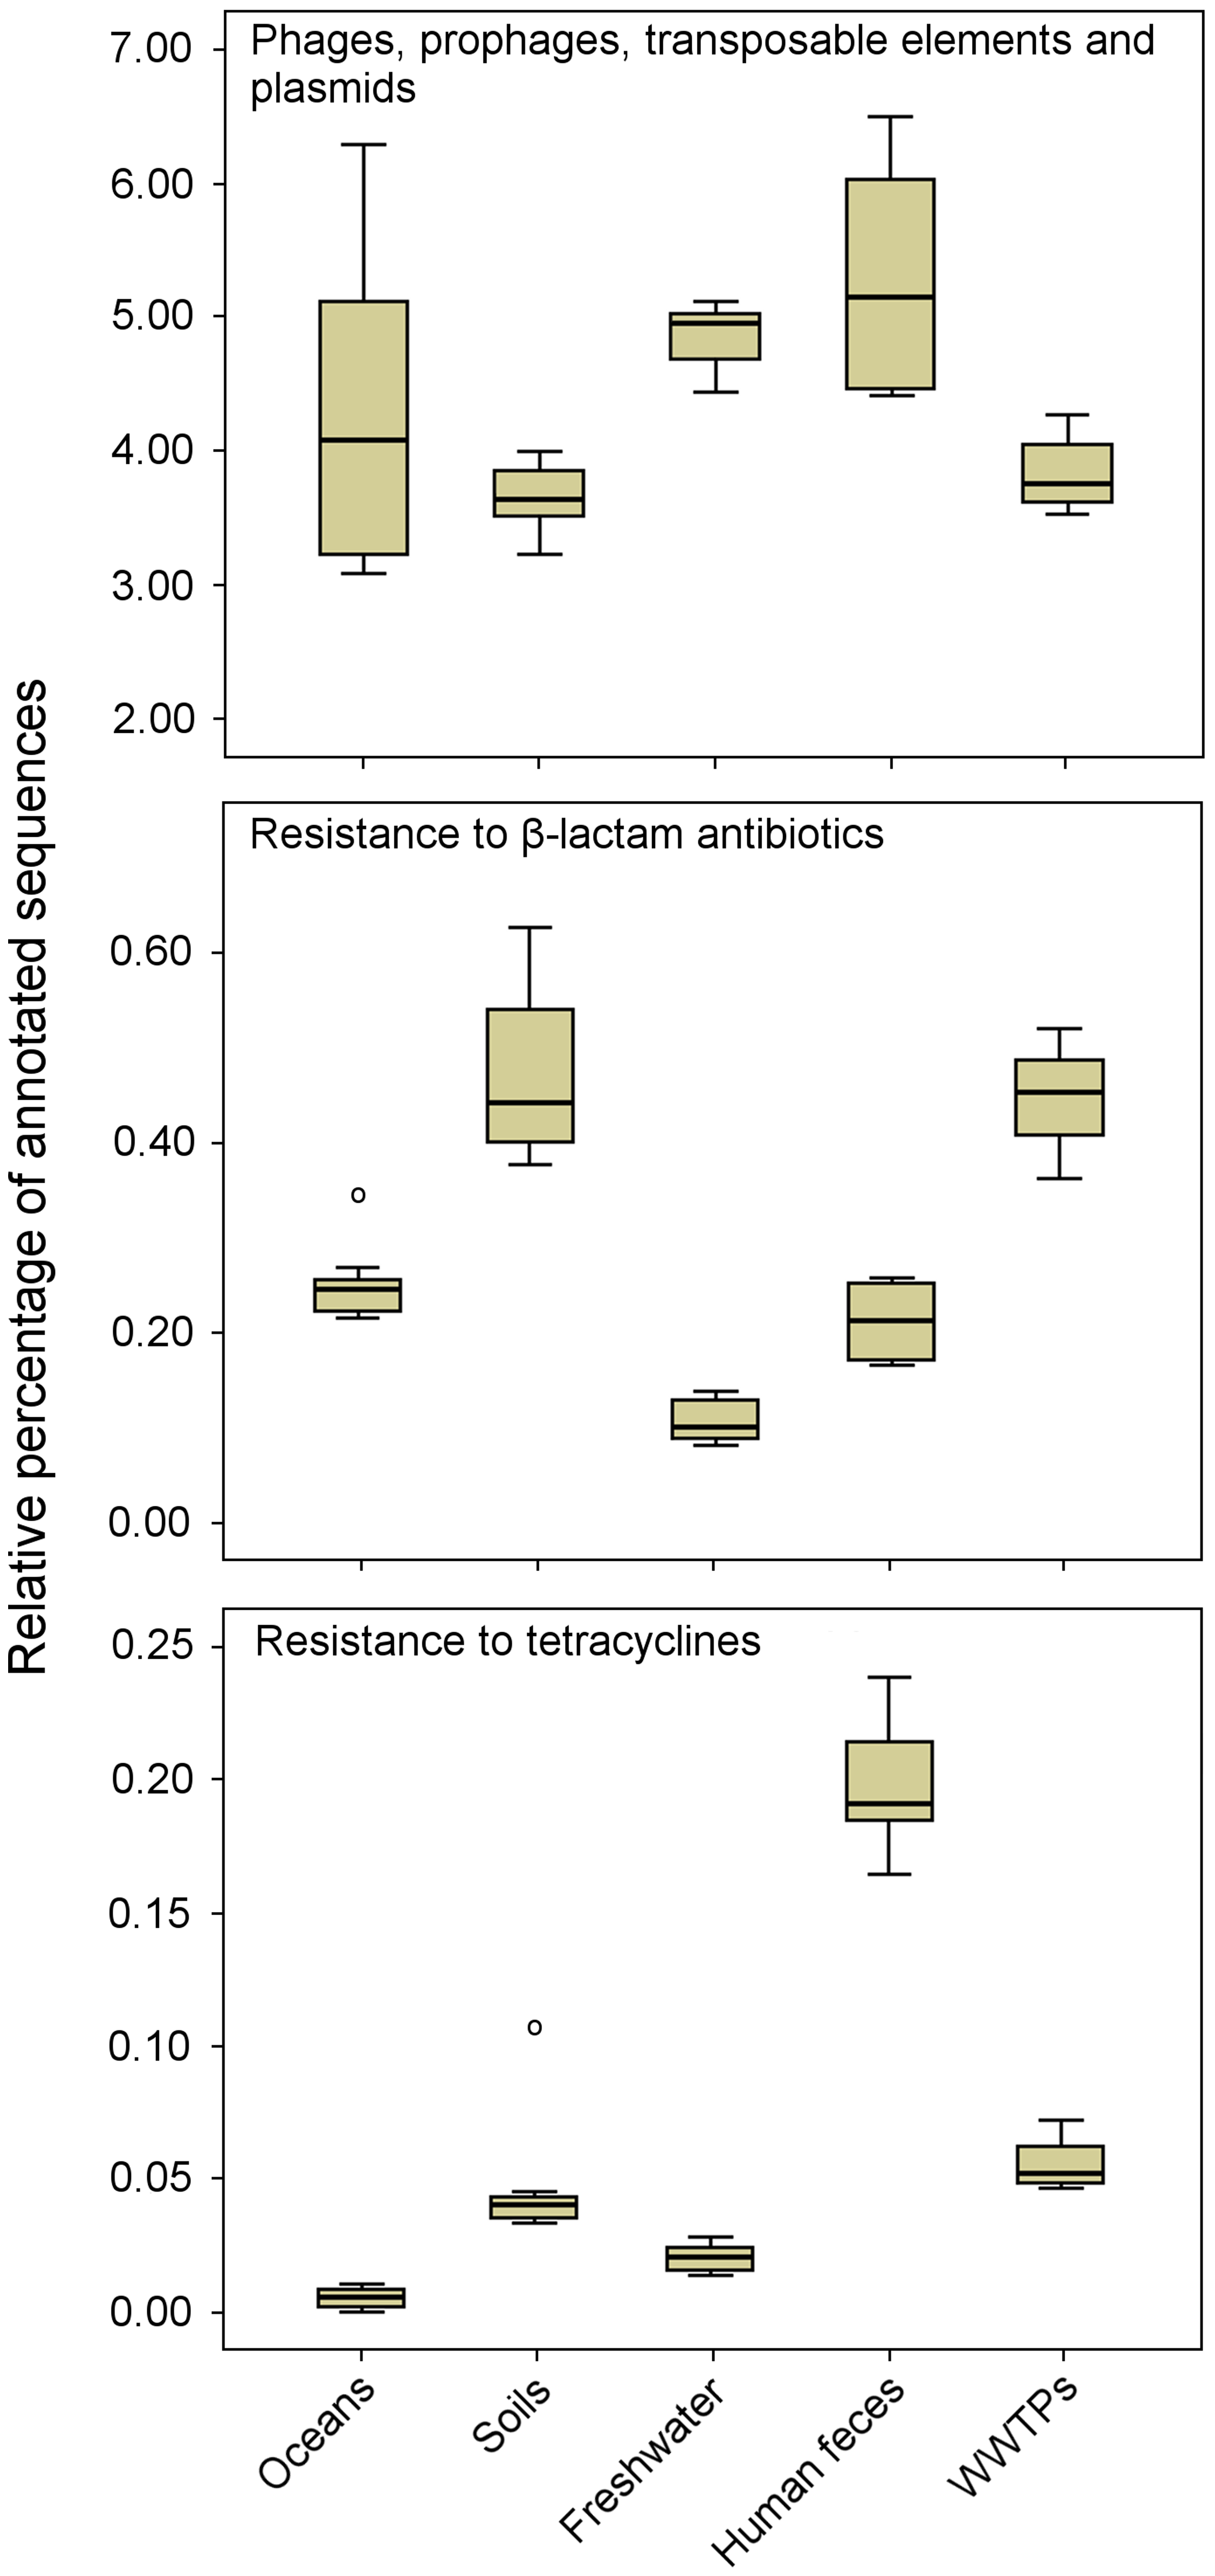 Metagenomic exploration of the resistome from human and environmental sources.